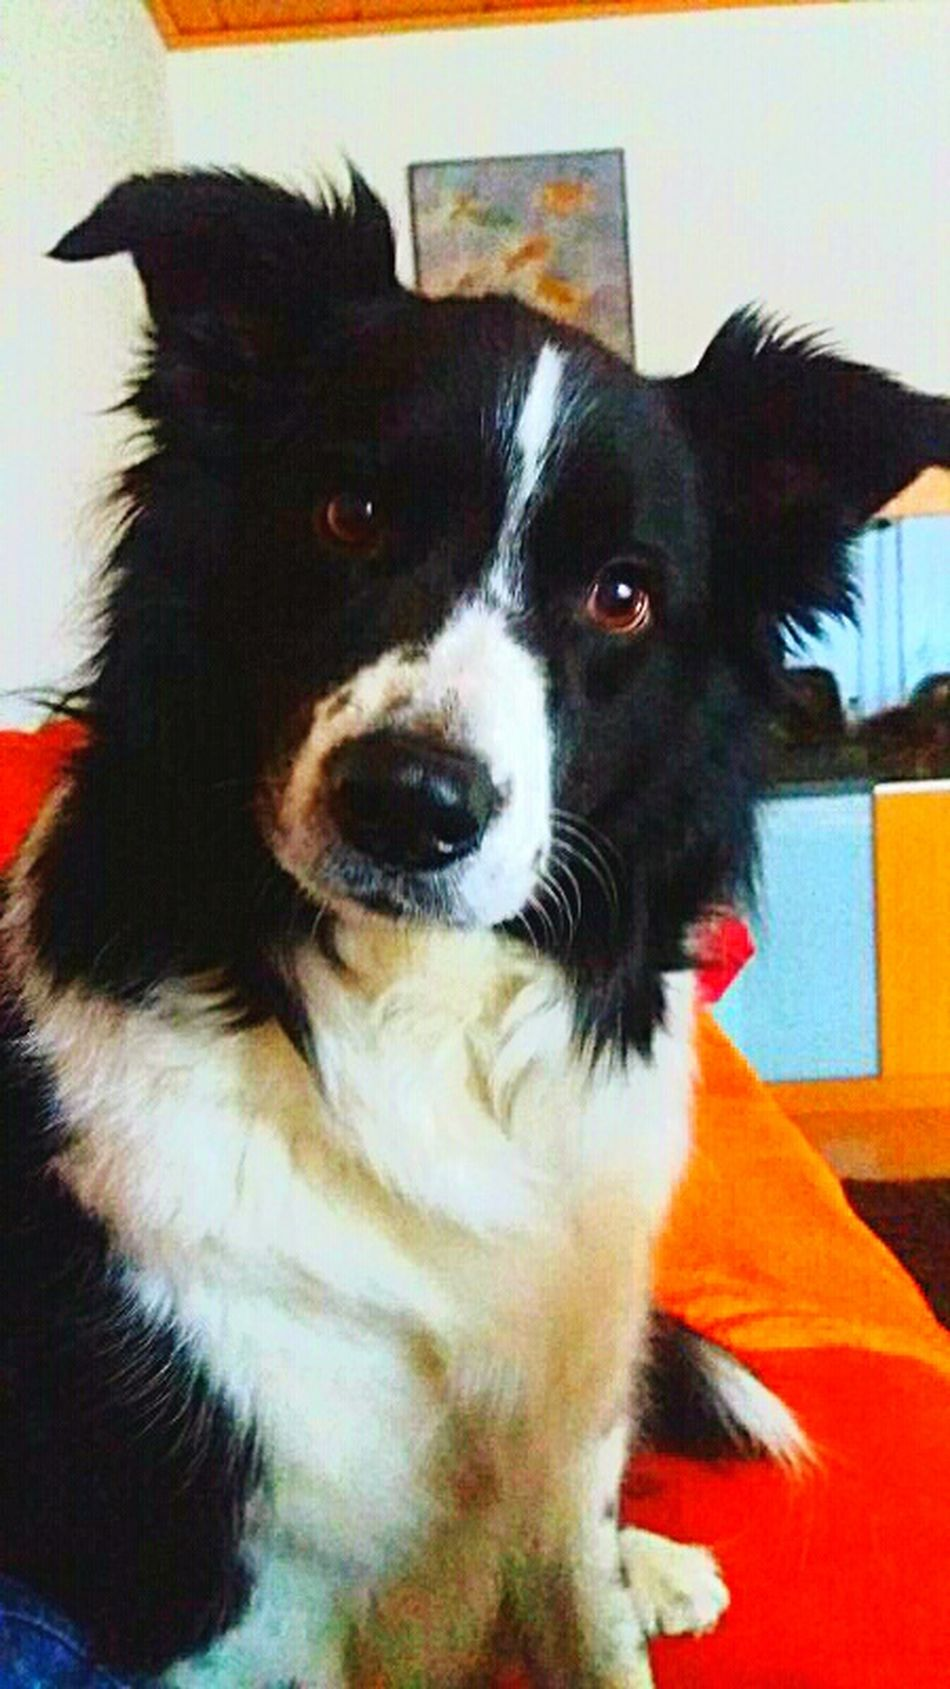 Pets One Animal Domestic Animals Animal Themes Indoors  Dog Close-up Mammal Animal Head  Resting Snout Zoology At Home Pampered Pets Loyalty Animal Hair Animal Nose Pet Photography  Border Collie Australienshepard Blackandwhite Black White Bestfriend Angel